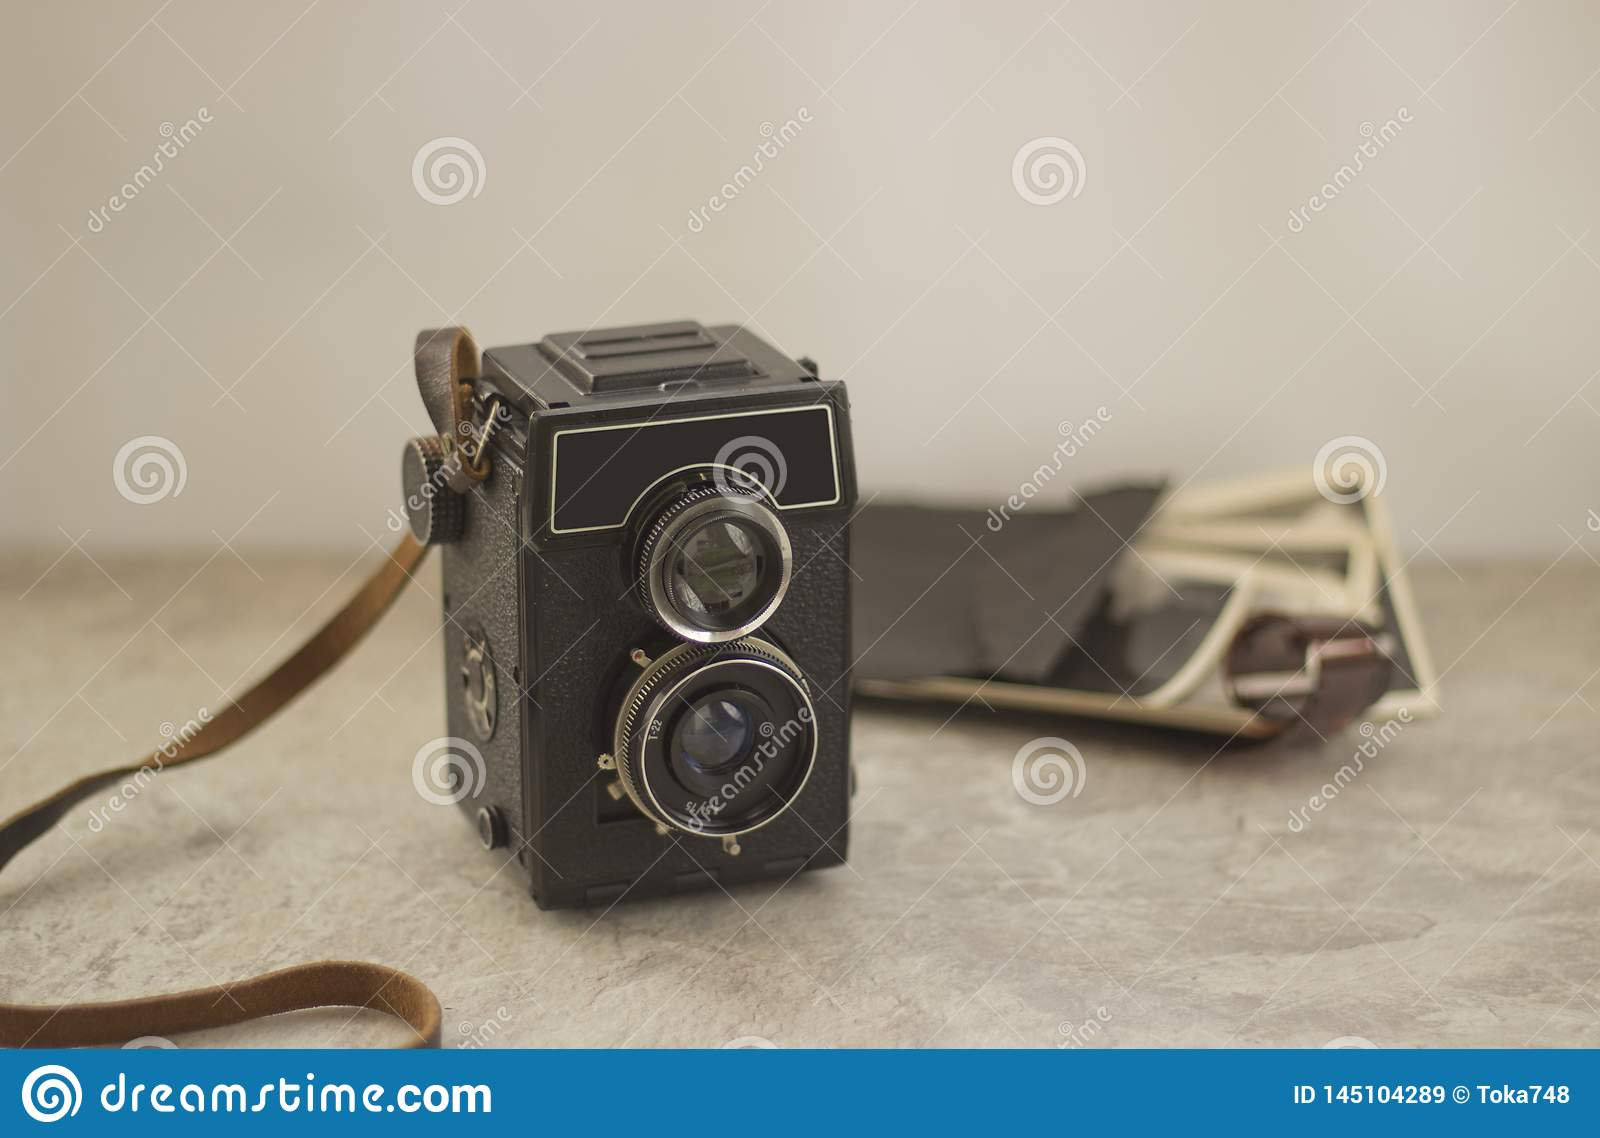 Vintage camera on the table